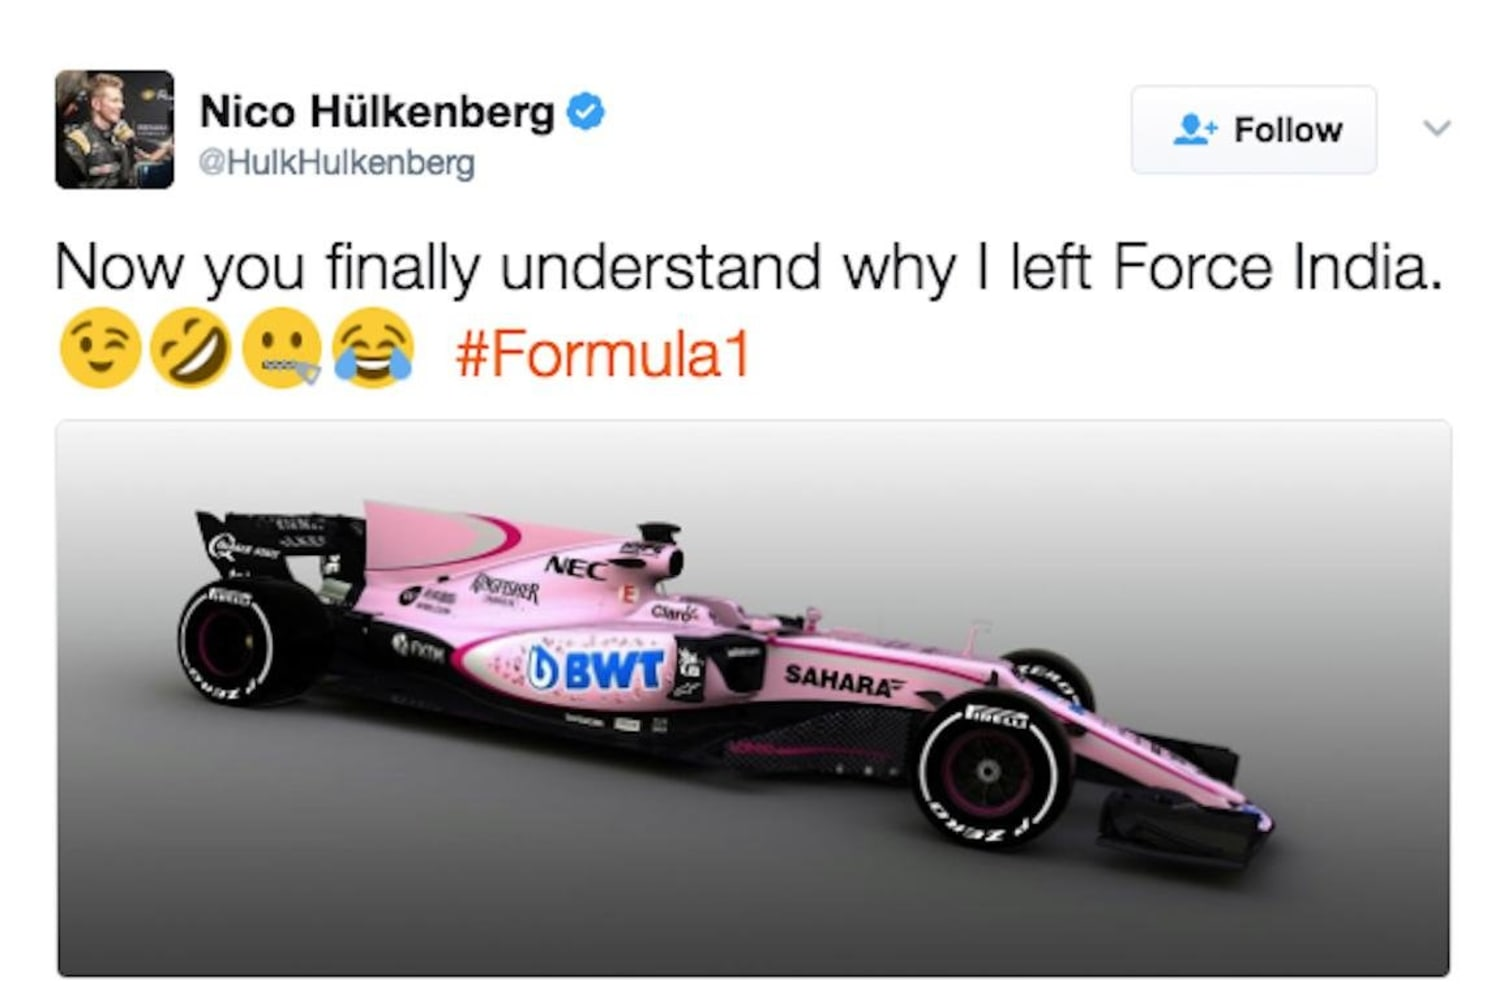 Nico Hulkenberg Insults Pink Force India Livery